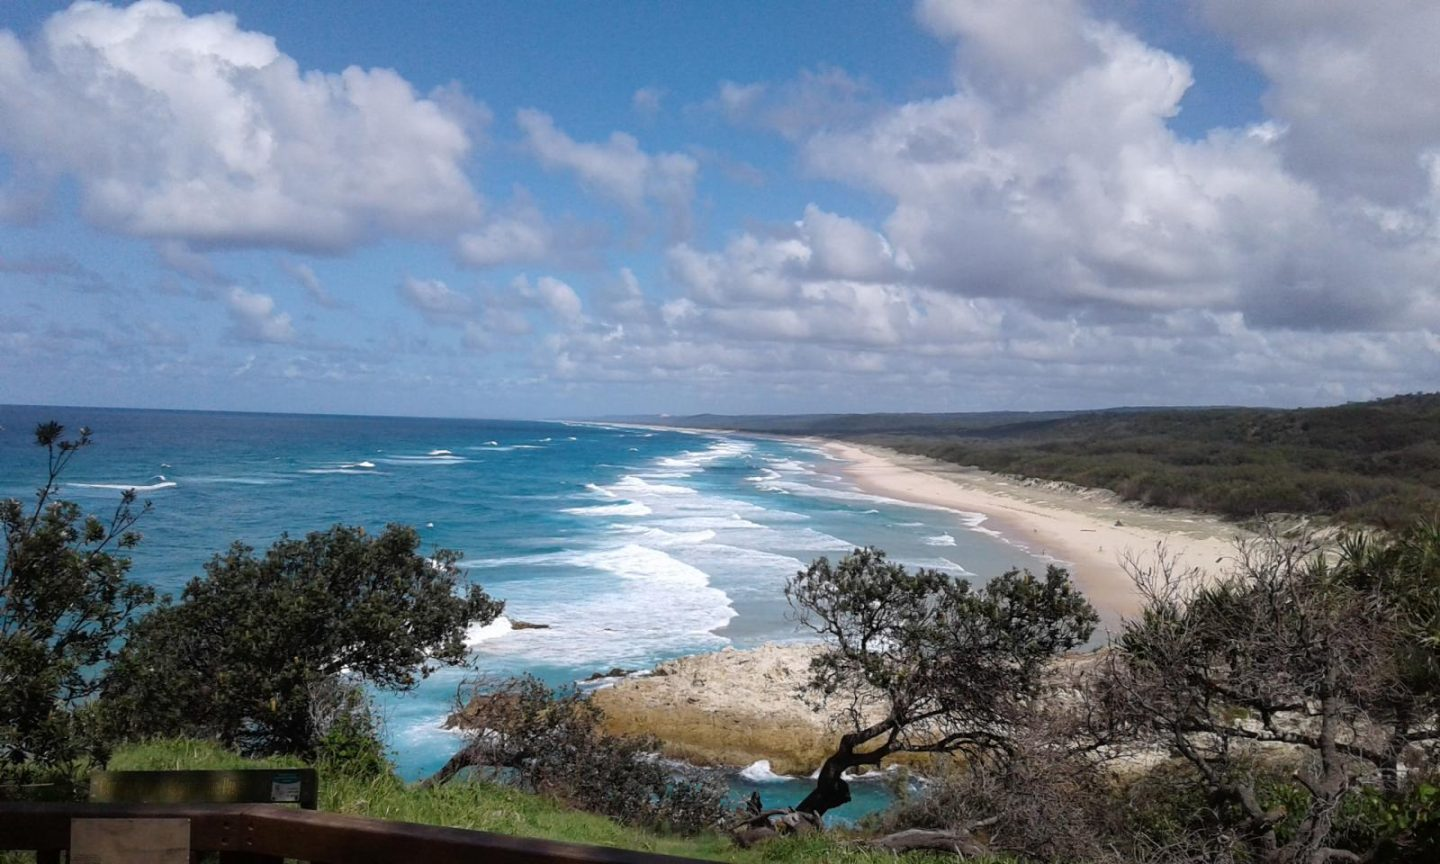 My first time at North Stradbroke Island